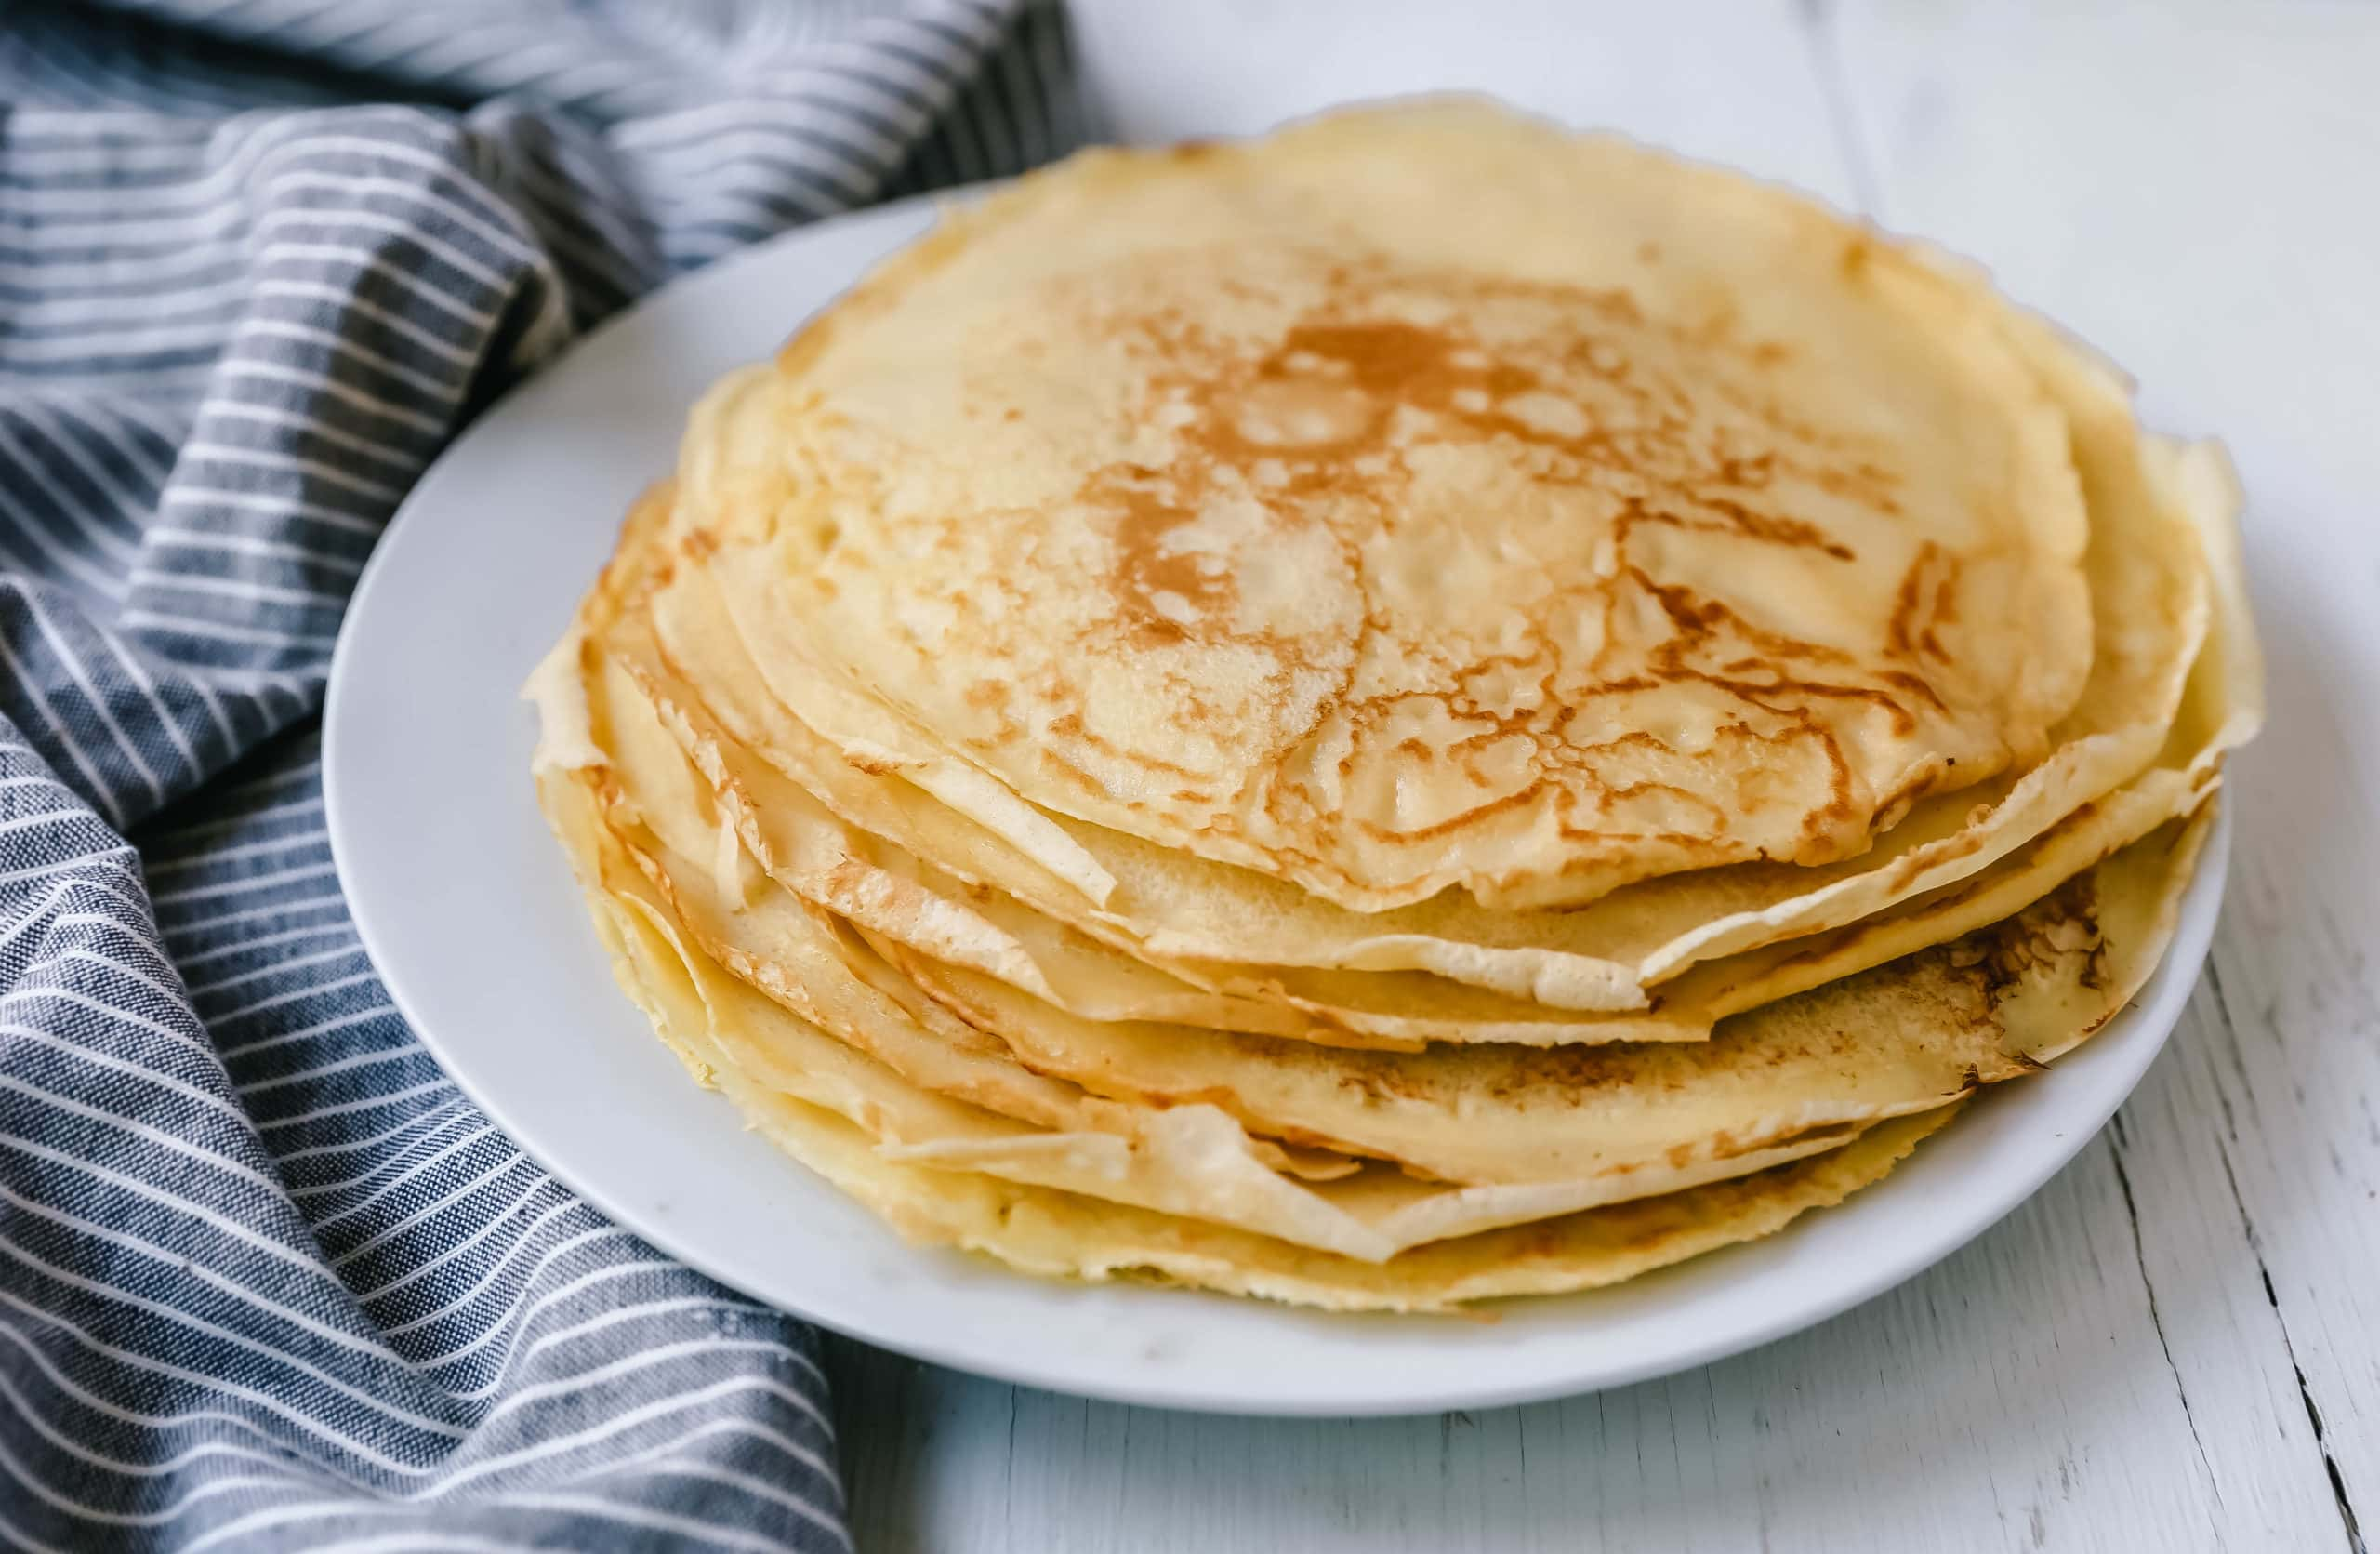 The Best Crepes Recipe. An easy homemade crepe recipe made with simple ingredients -- milk, flour, eggs, sugar, water, and butter. Simple 6-ingredient crepe recipe!